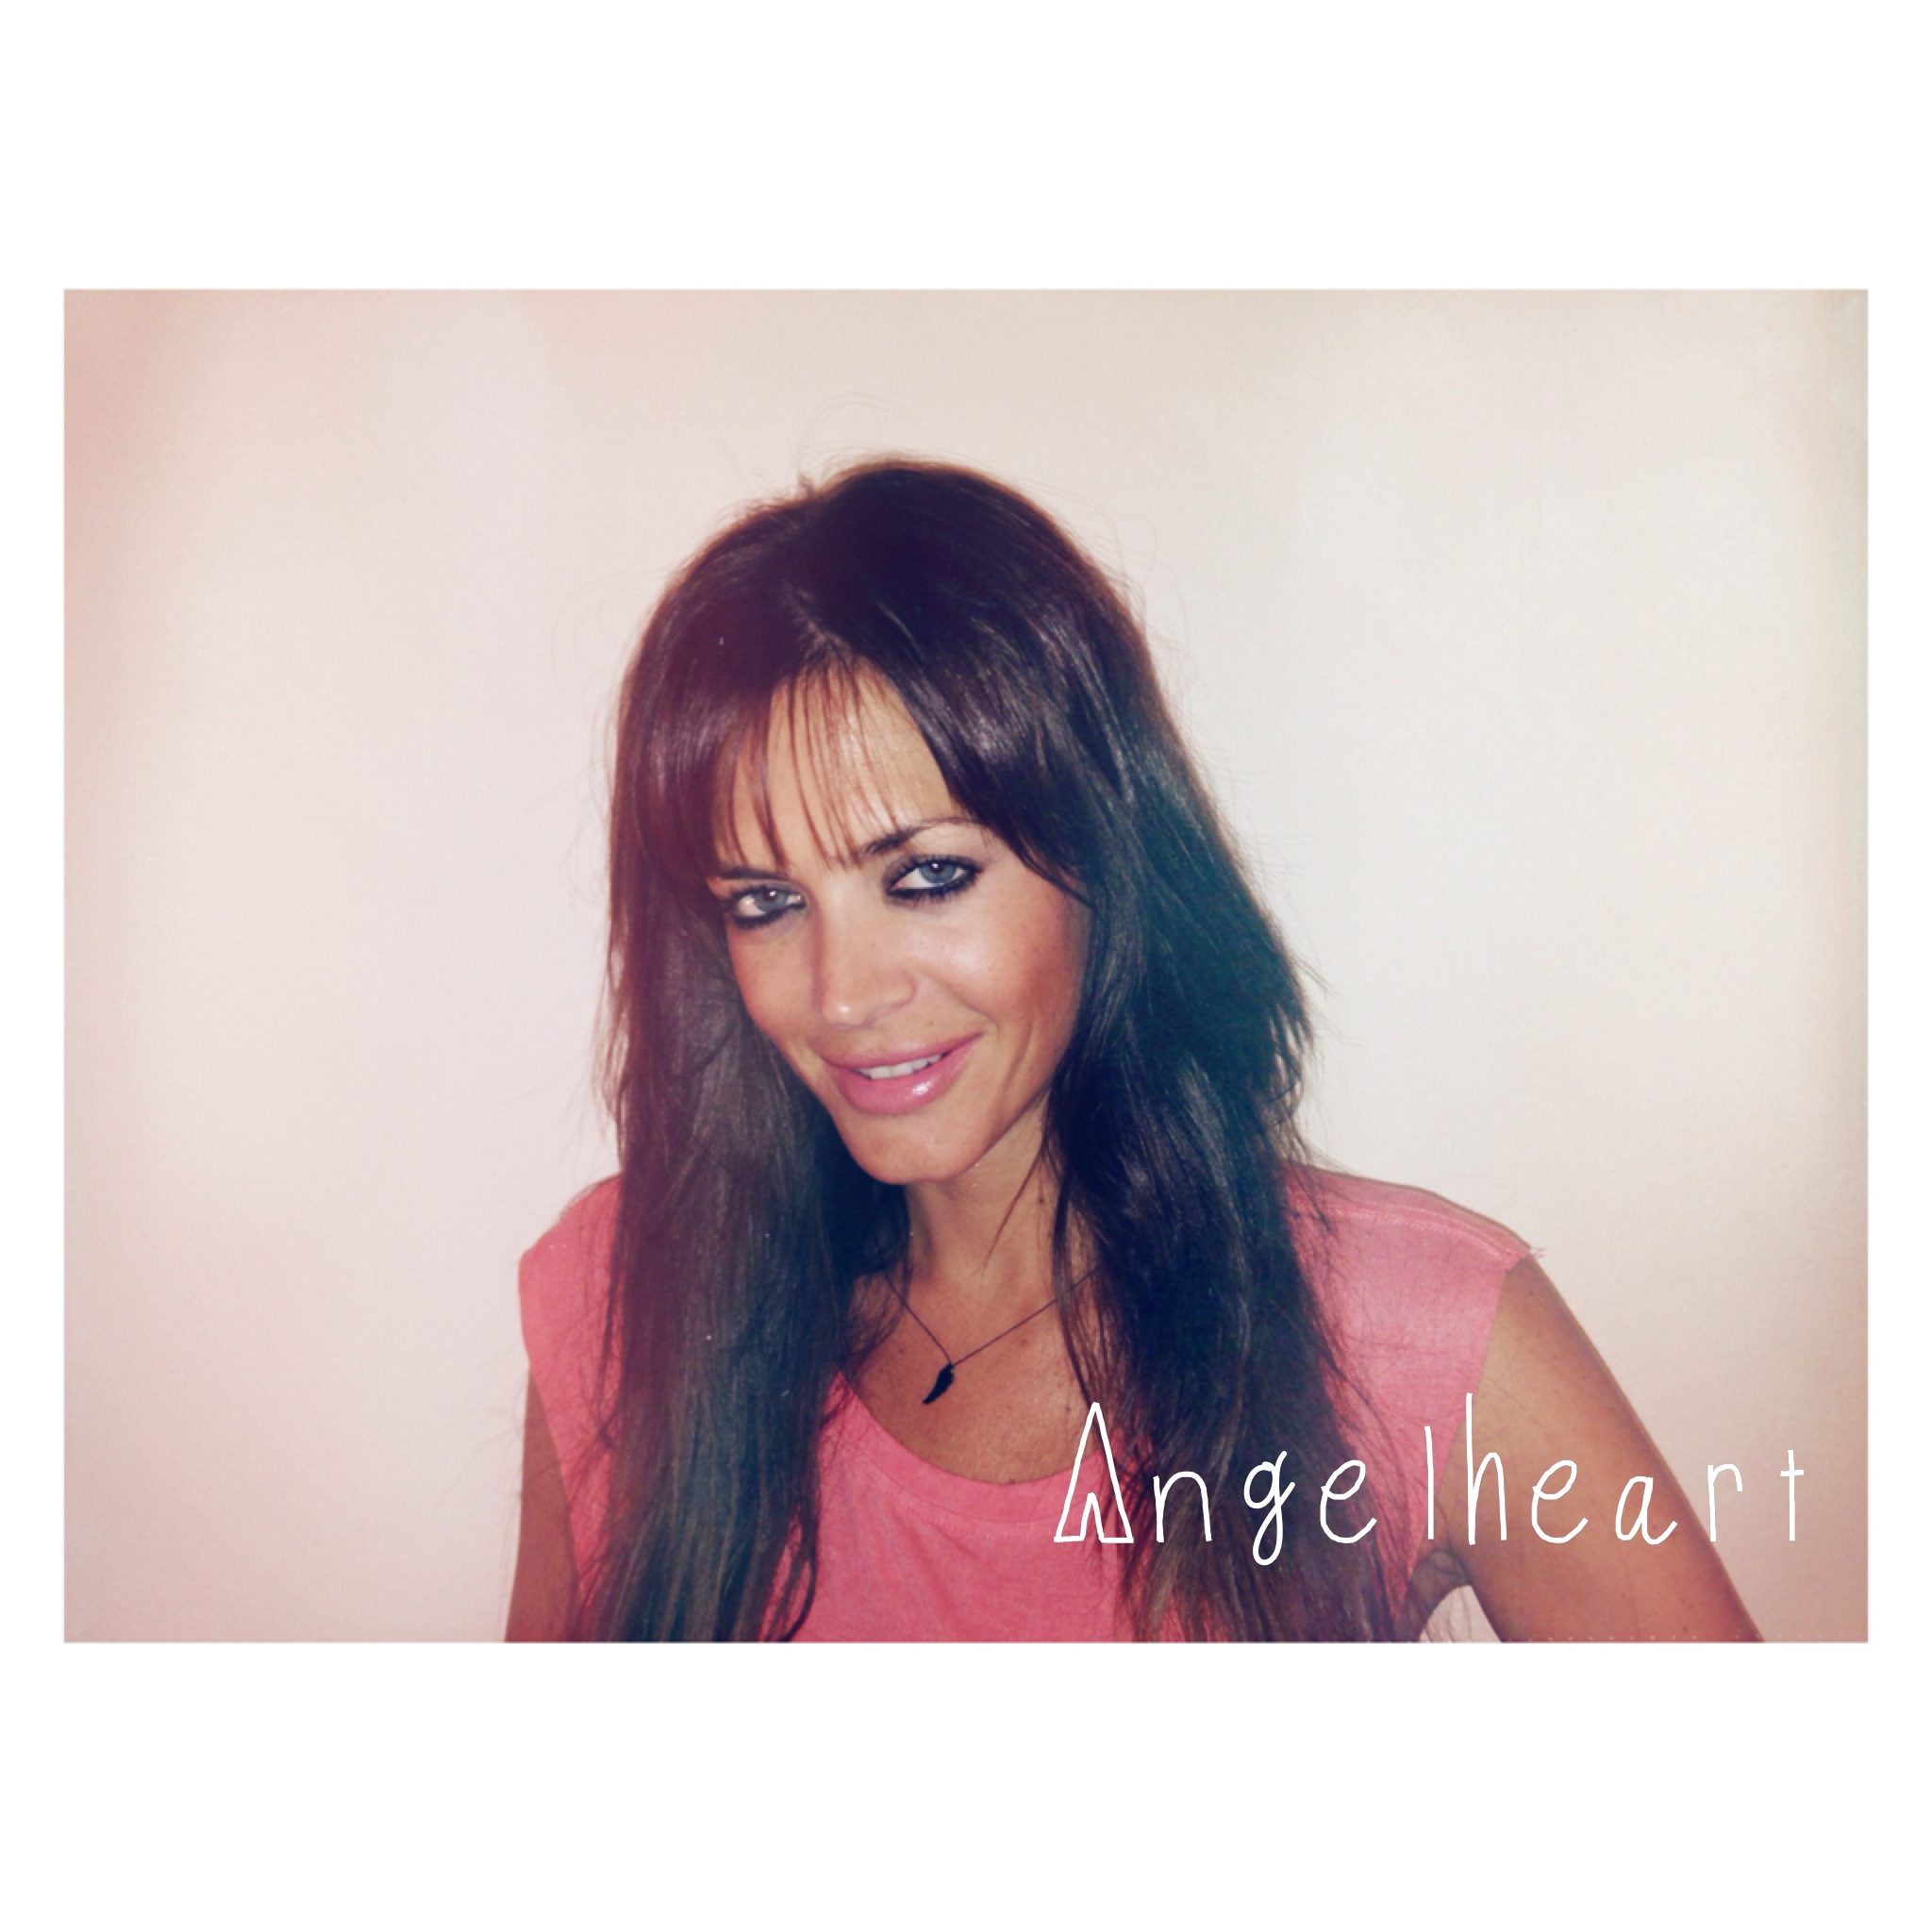 Angelheart Necklaces: Helping To Save The Rhino